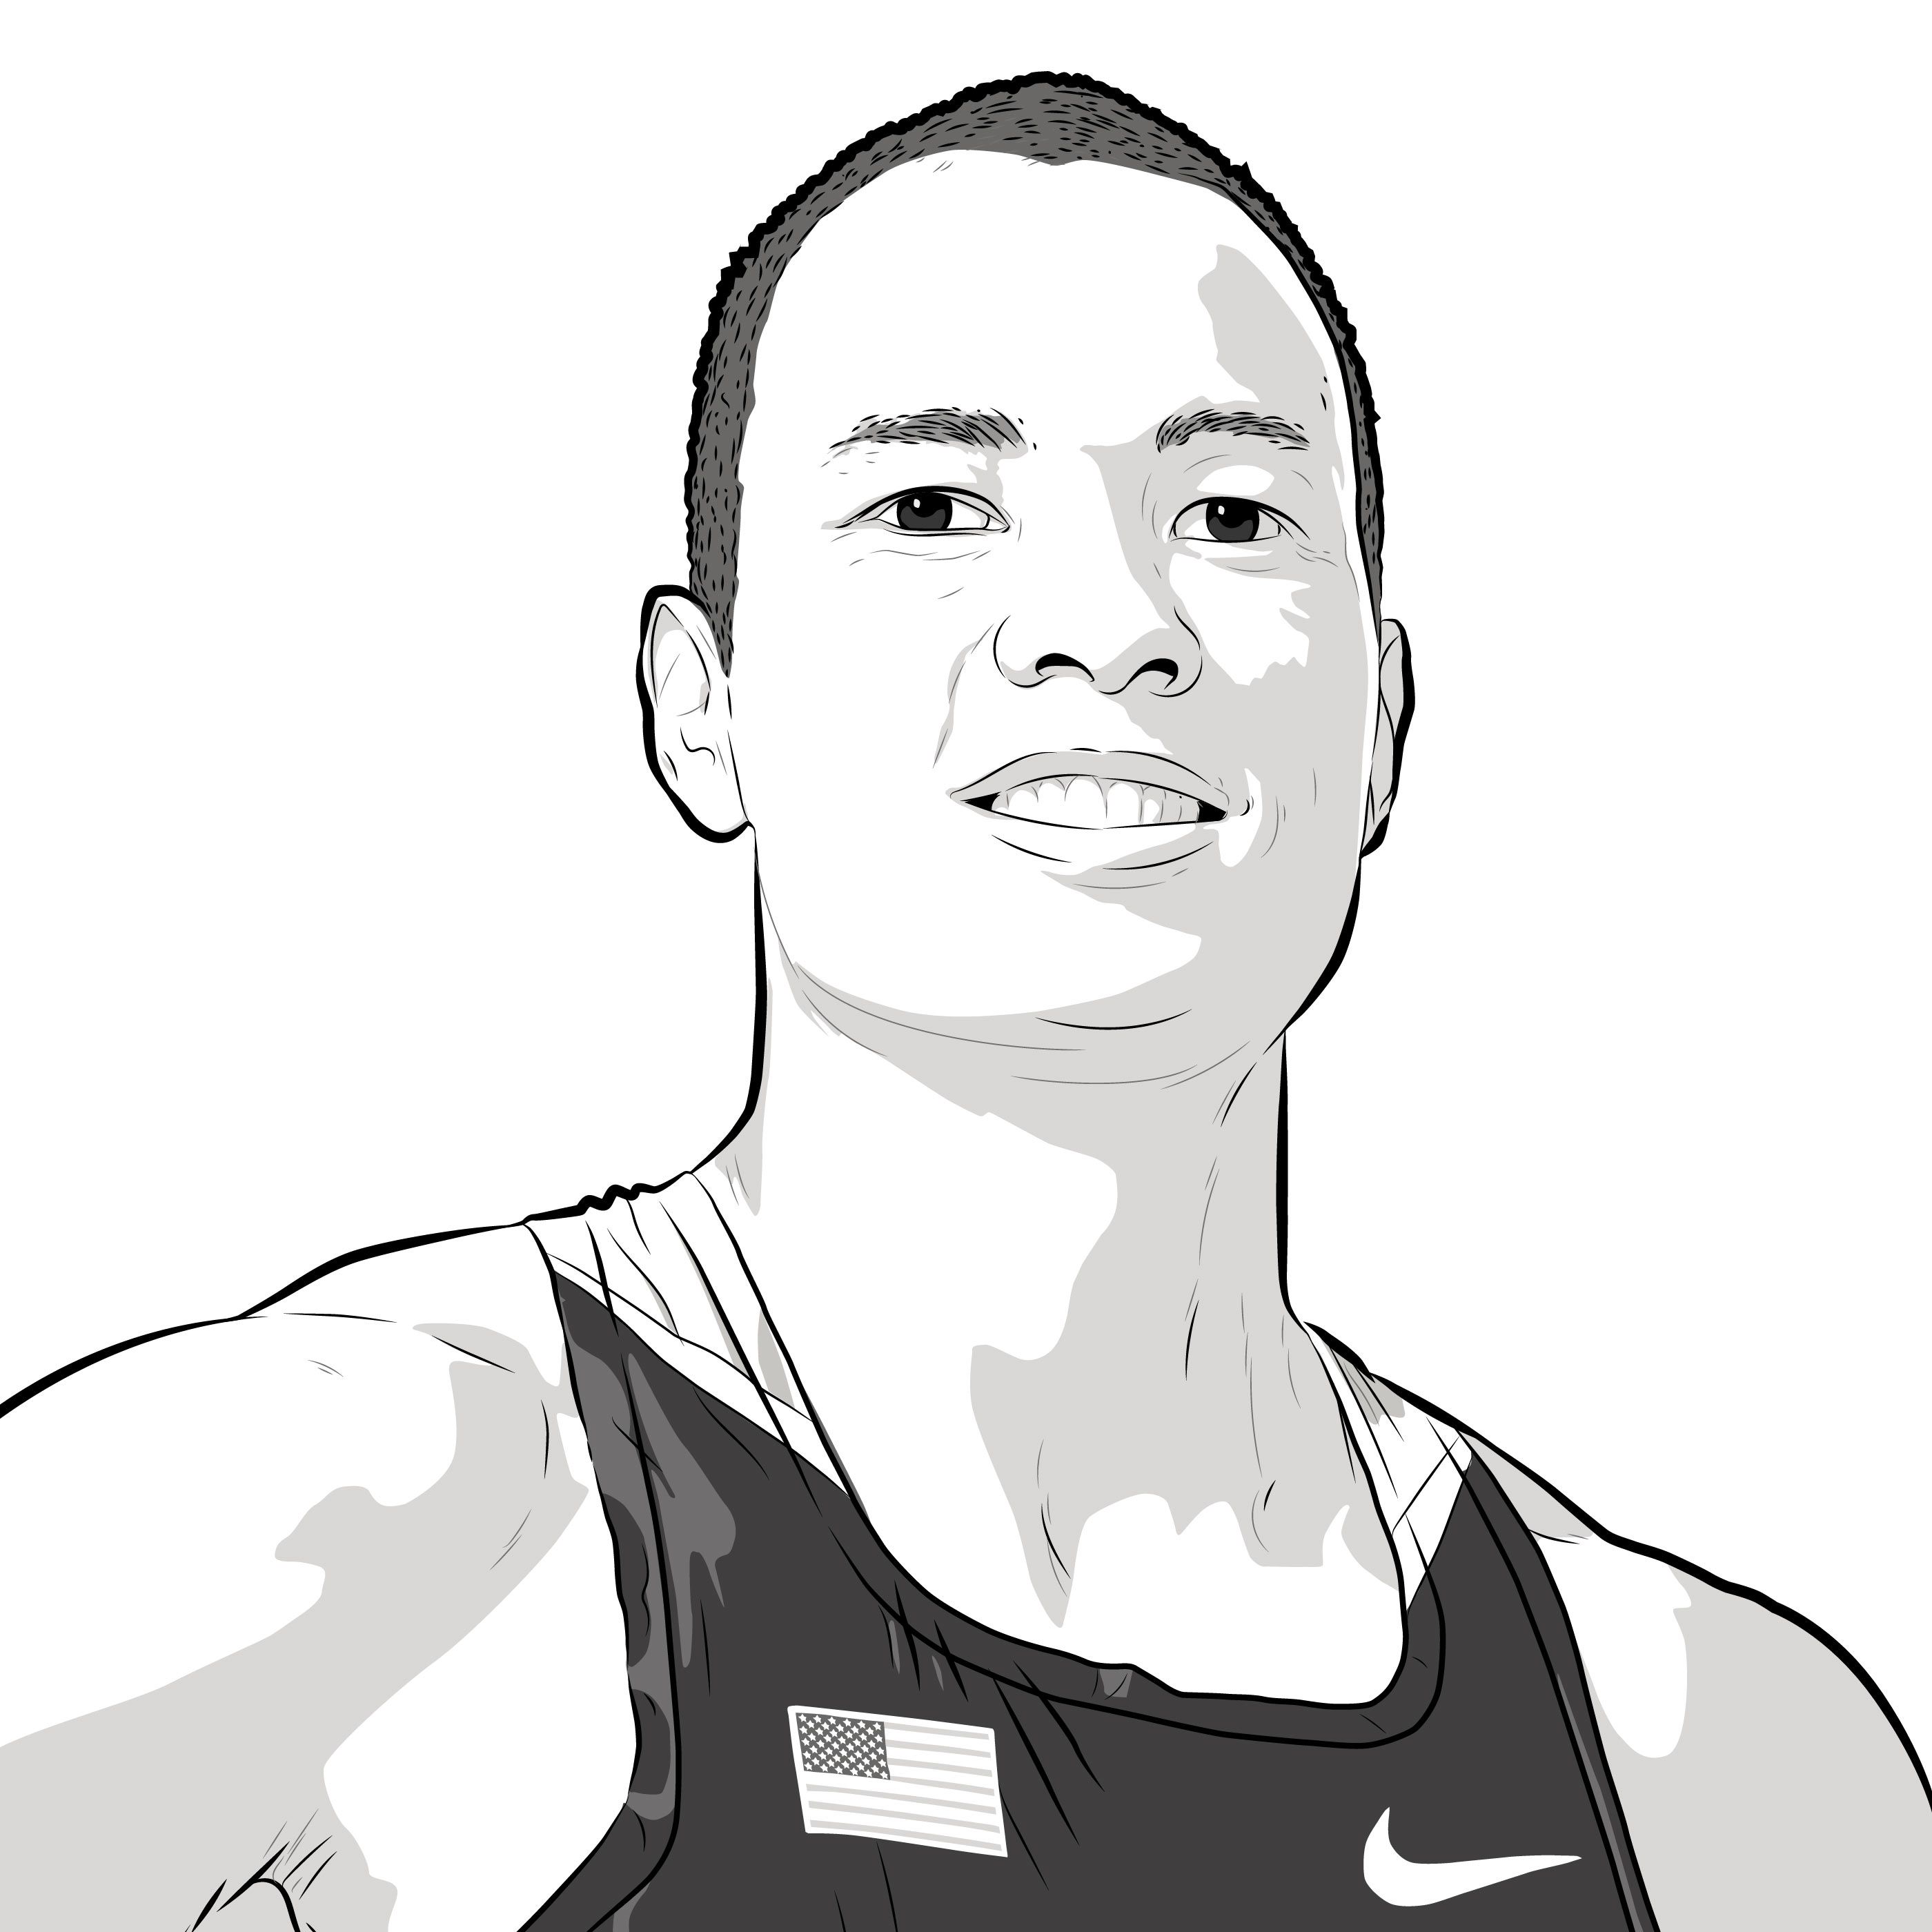 Athlete Portrait of Bryan Clay, illustration by Max Hancock